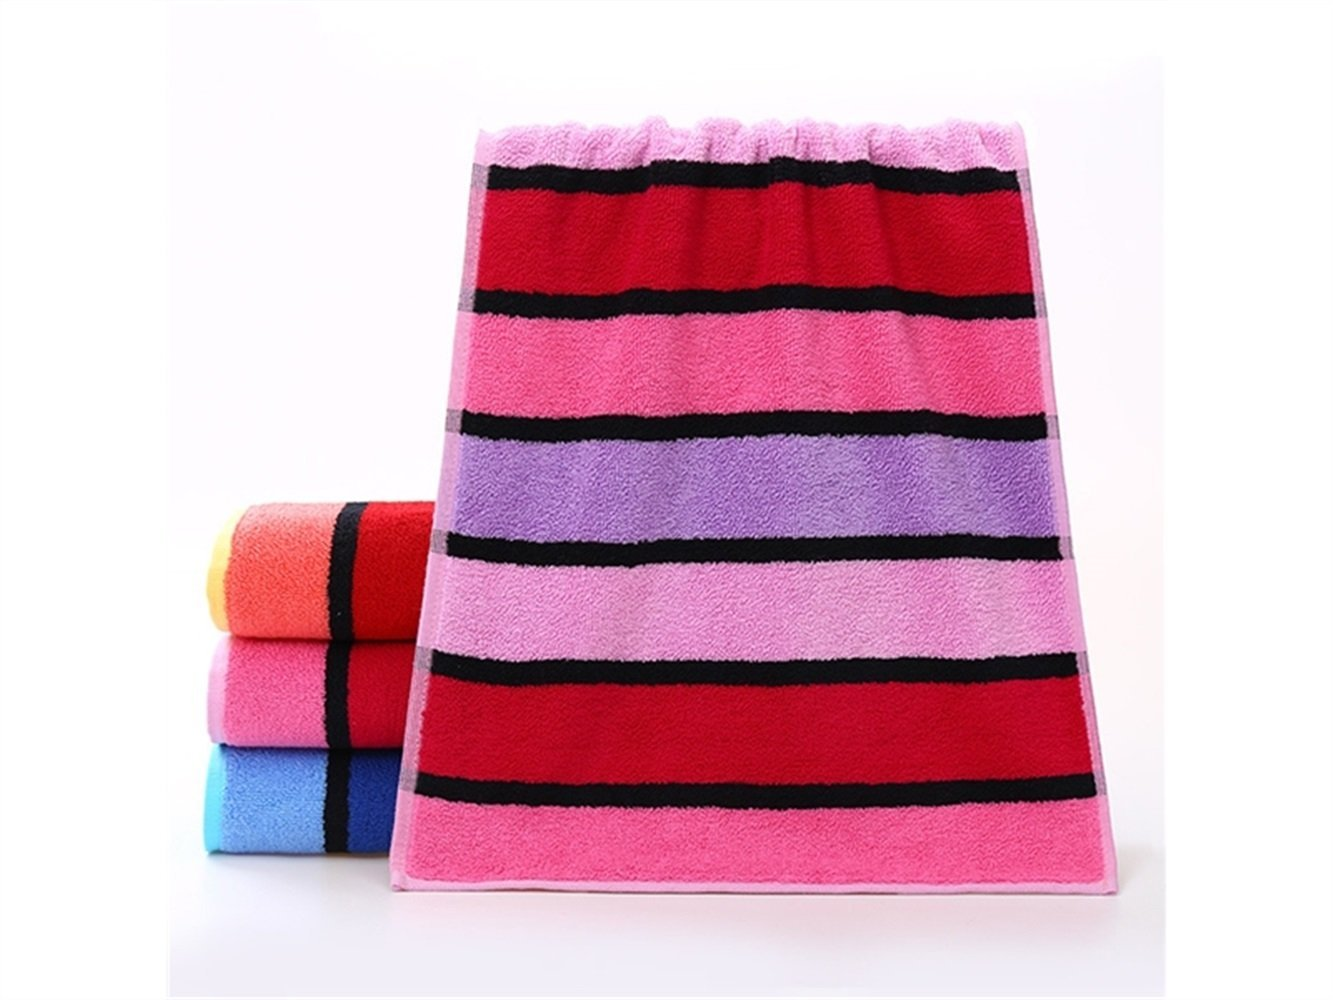 Wesource Activates Stripe Jacquard Adult Thicken Wash Face Towel Absorbent Couple Wiping Towel Householdl(Red)